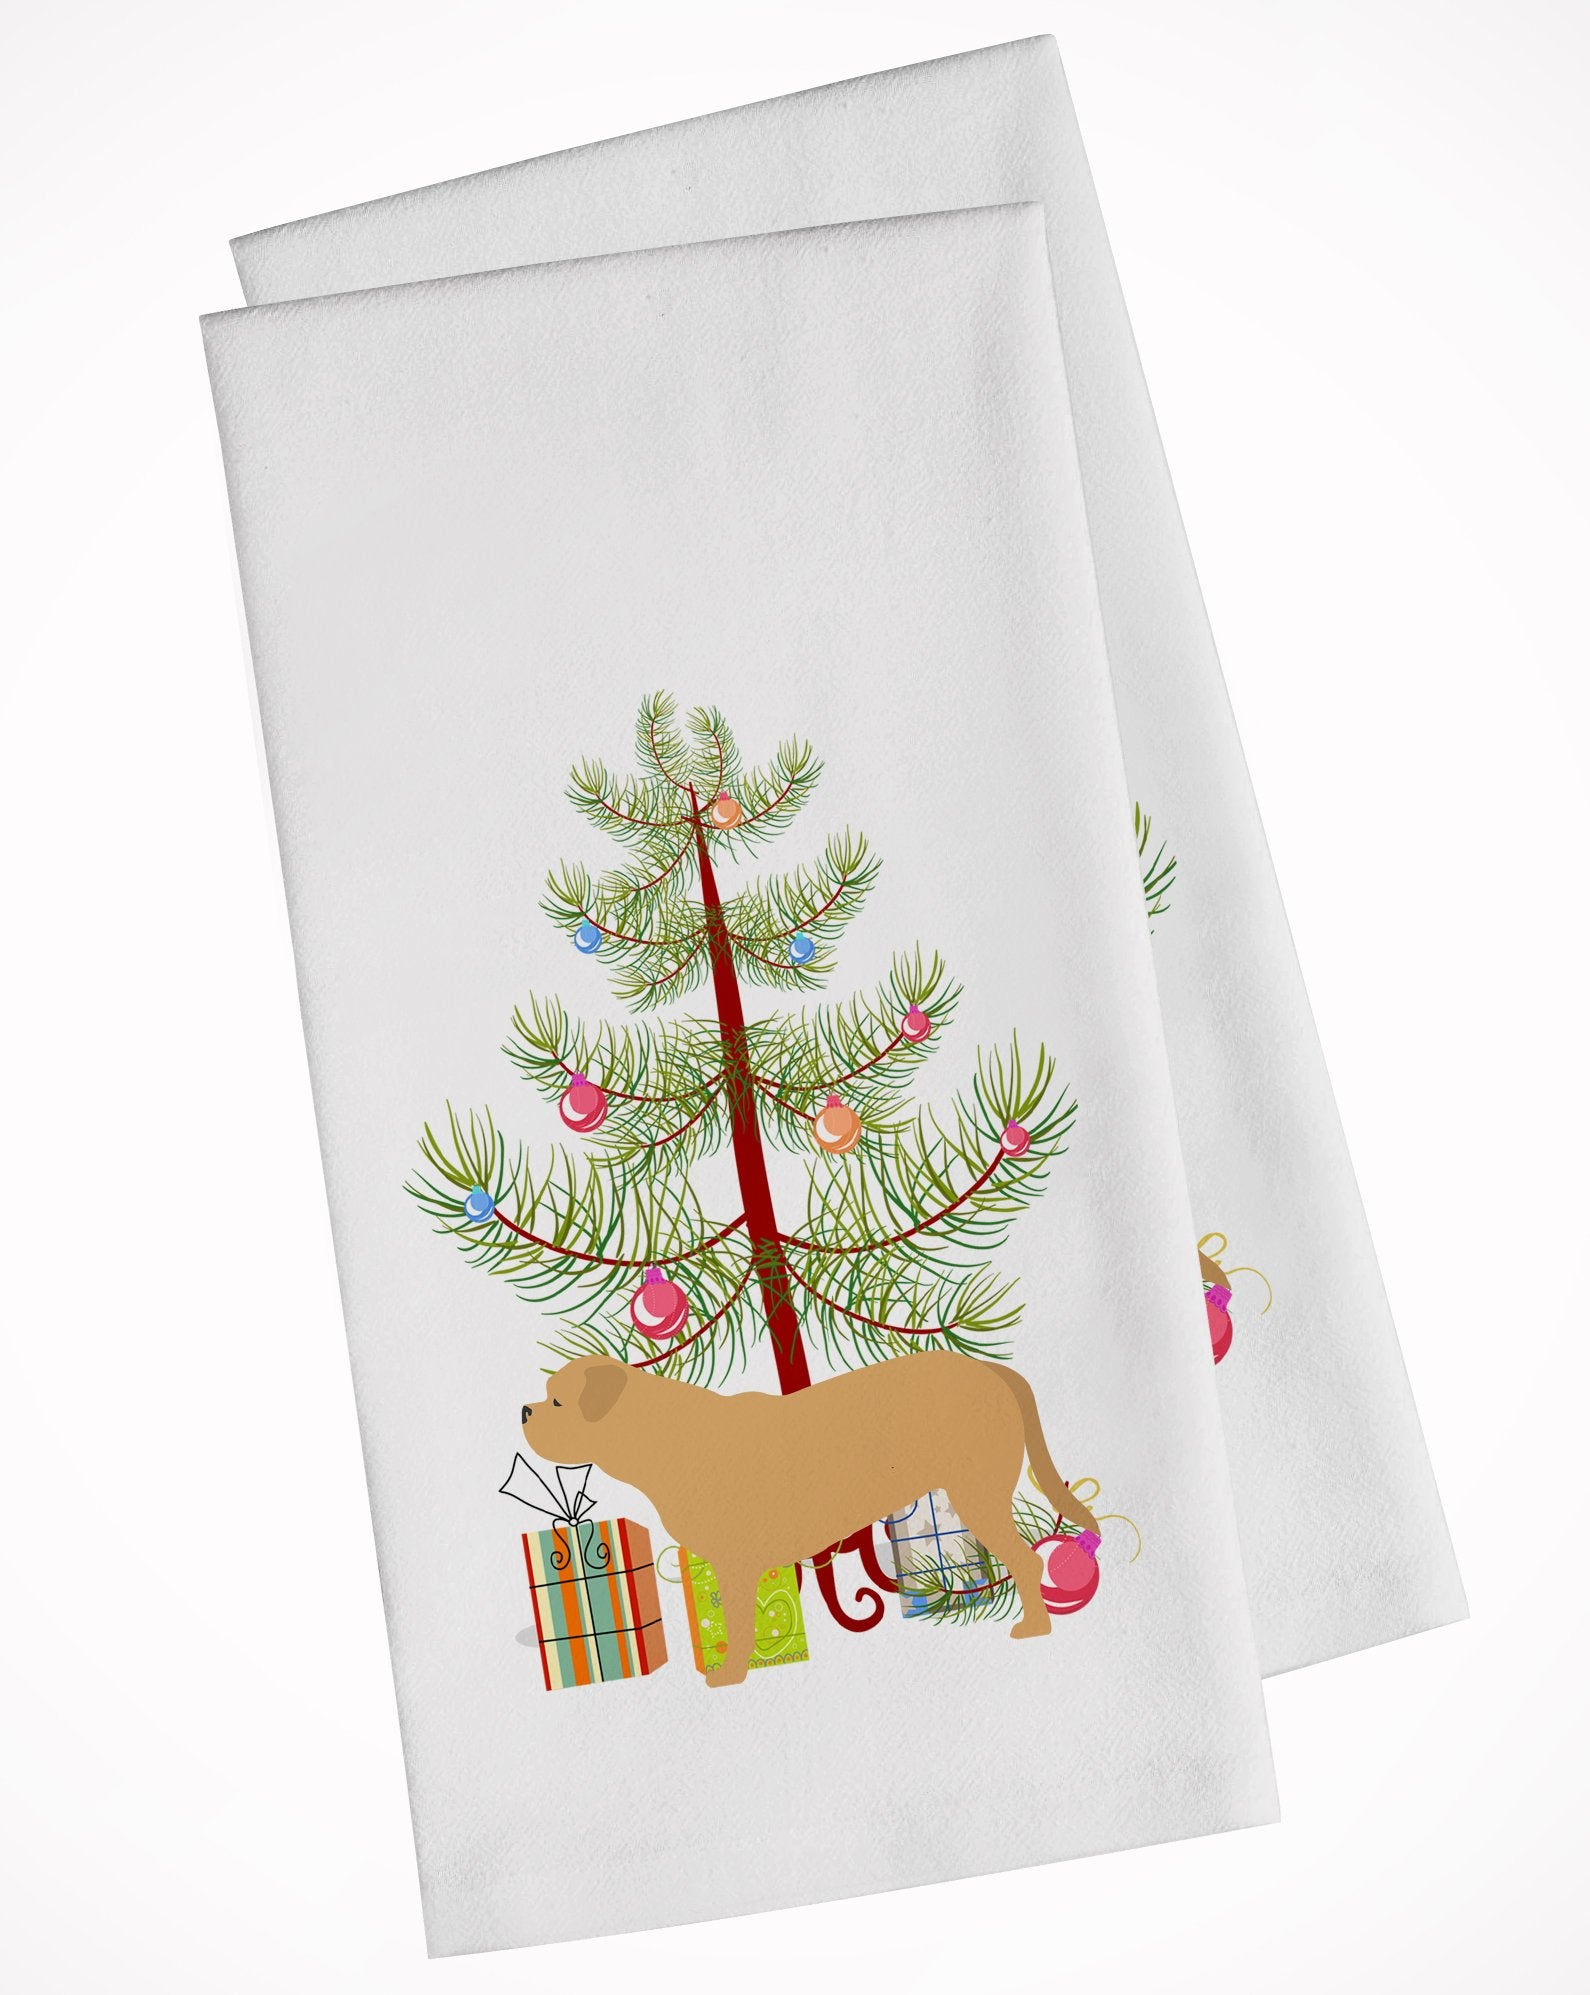 Dogue de Bordeaux Merry Christmas Tree White Kitchen Towel Set of 2 BB2988WTKT by Caroline's Treasures